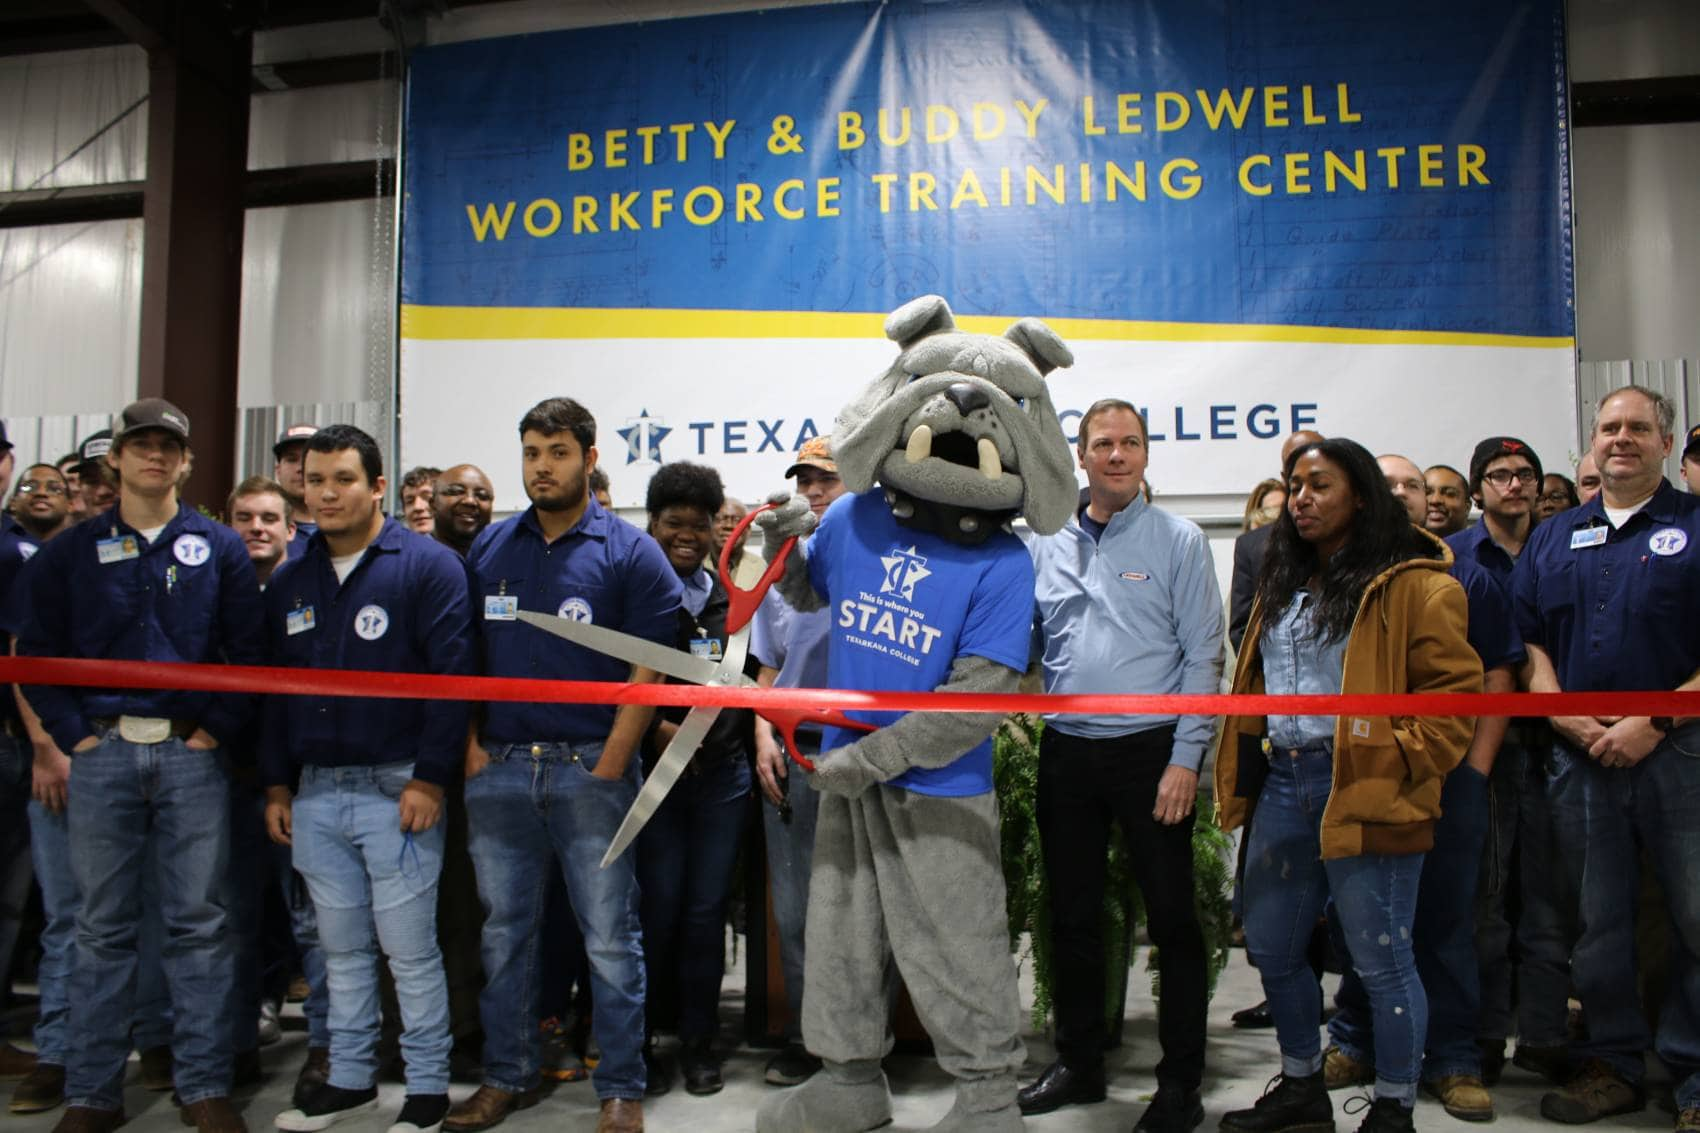 Texarkana College Opens New Workforce Training Center in Honor of Ledwell Family